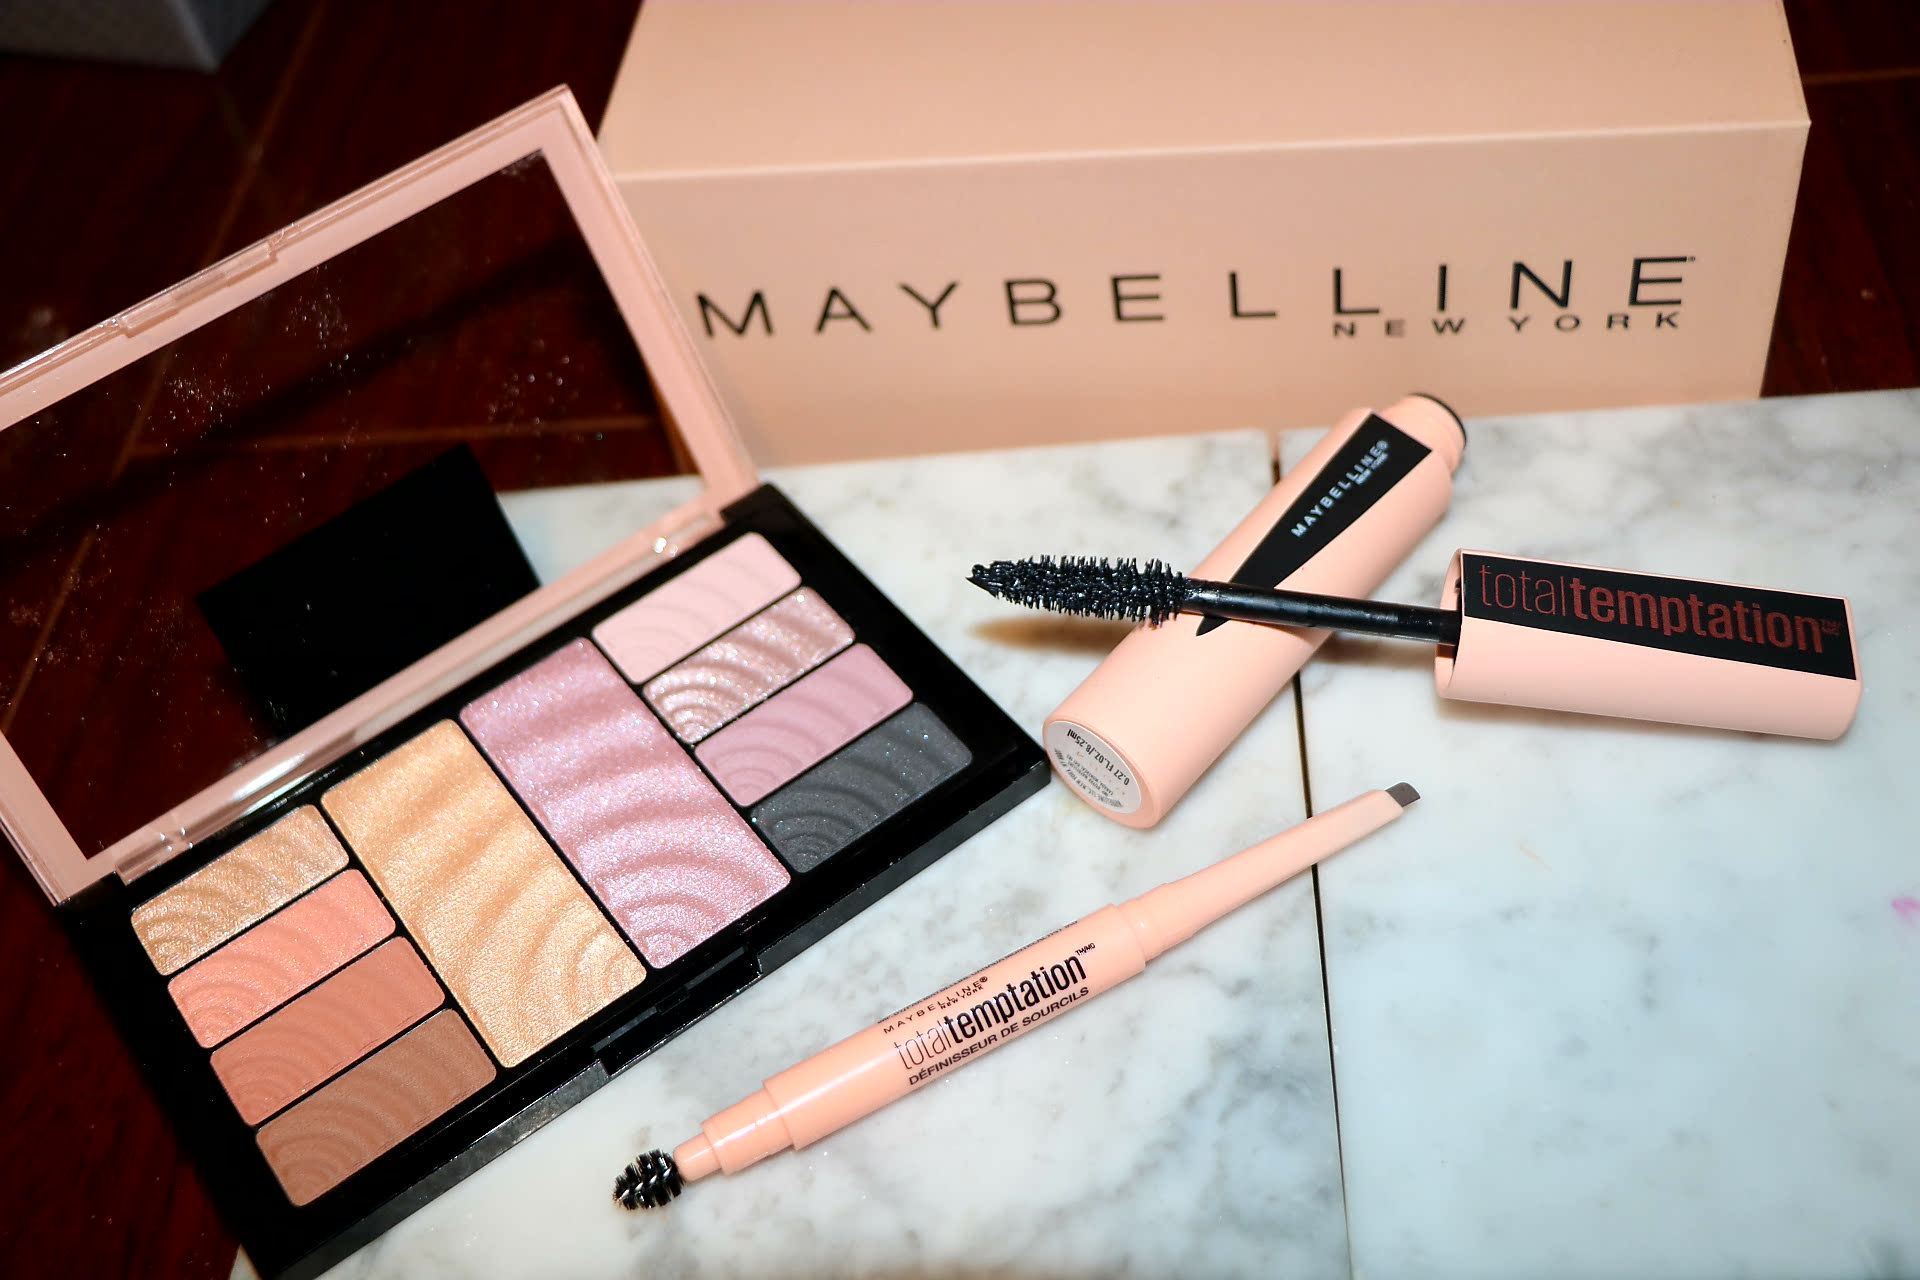 89f0ff1629e It's official, Maybelline New York has officially launched a new franchise  – Total Temptation.